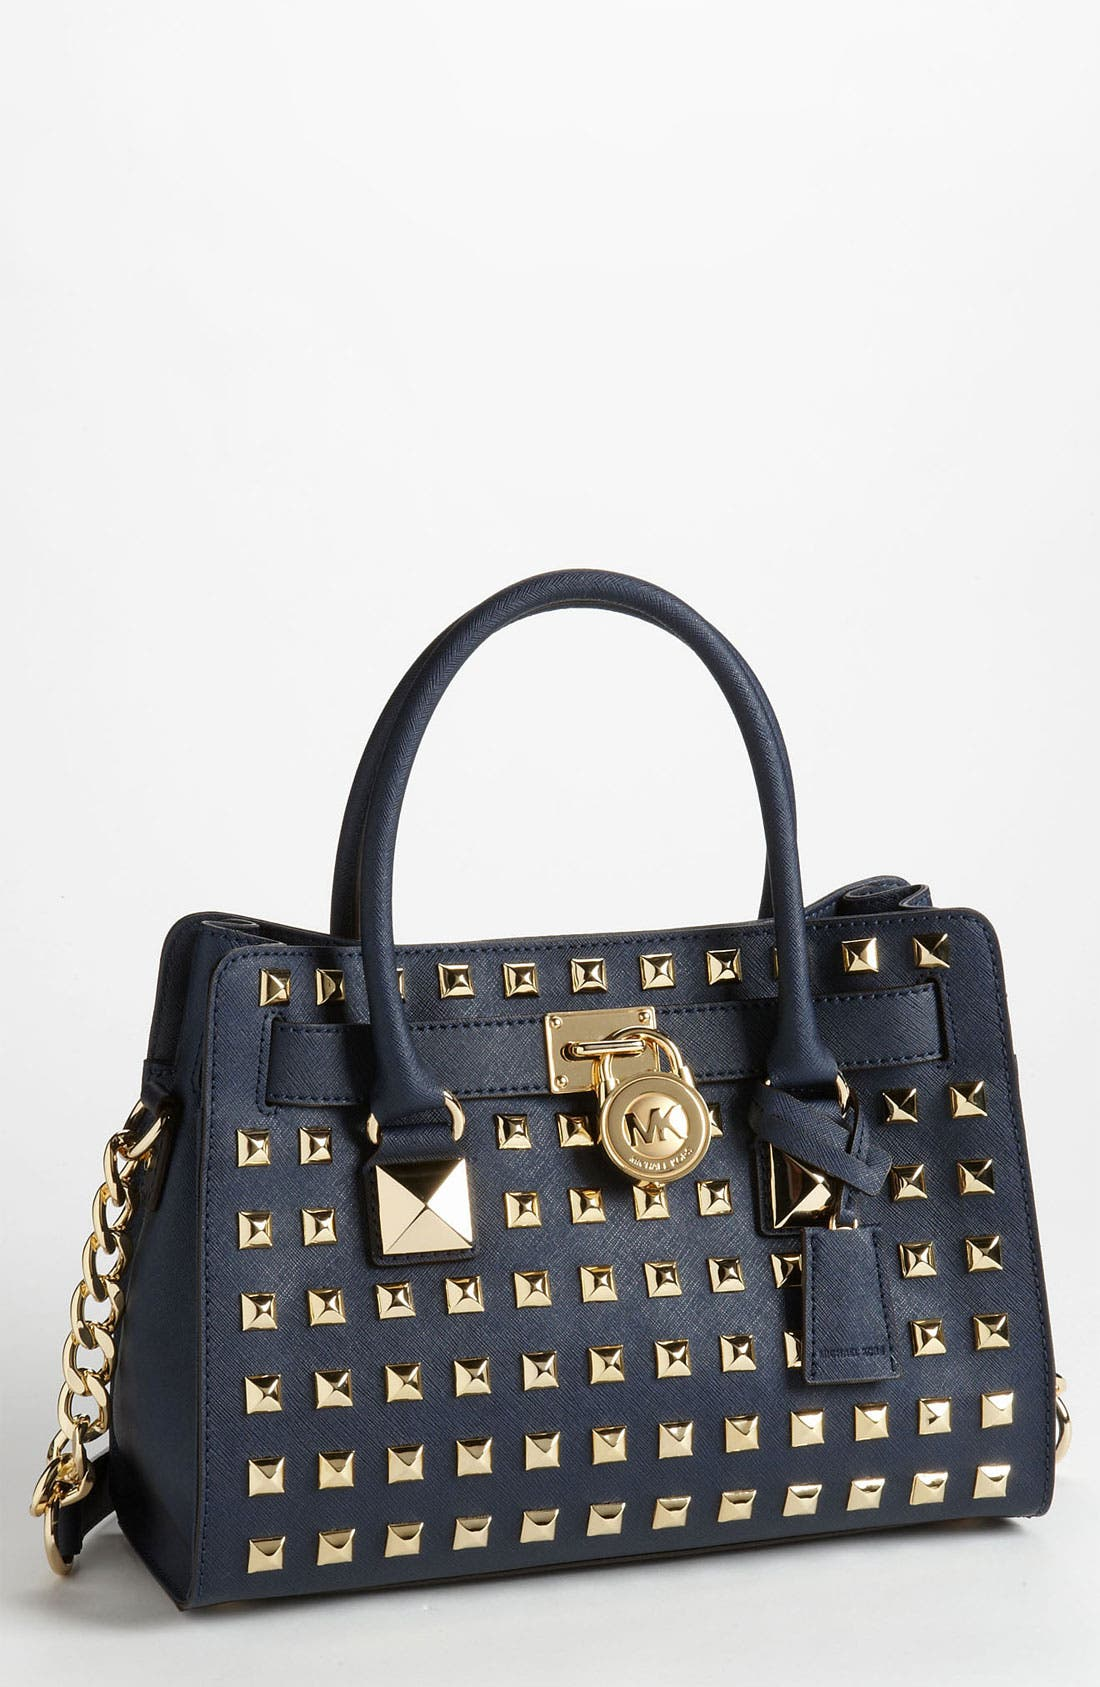 Alternate Image 1 Selected - MICHAEL Michael Kors 'Hamilton' Studded Leather Satchel